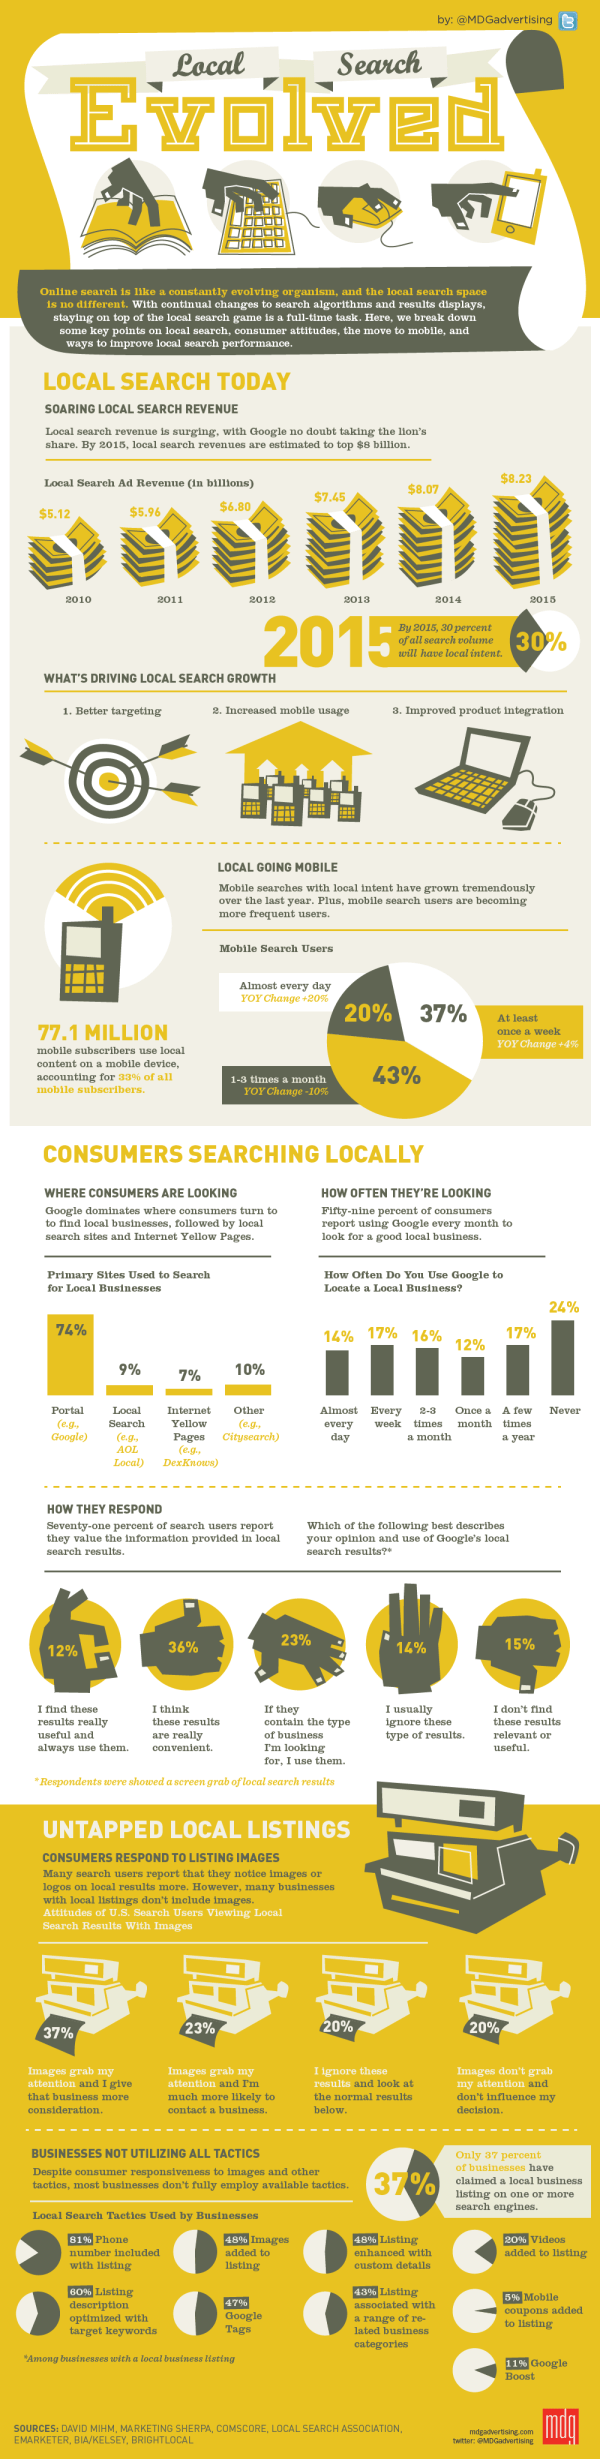 Infographic: Local Search Evolved by MDG Advertising